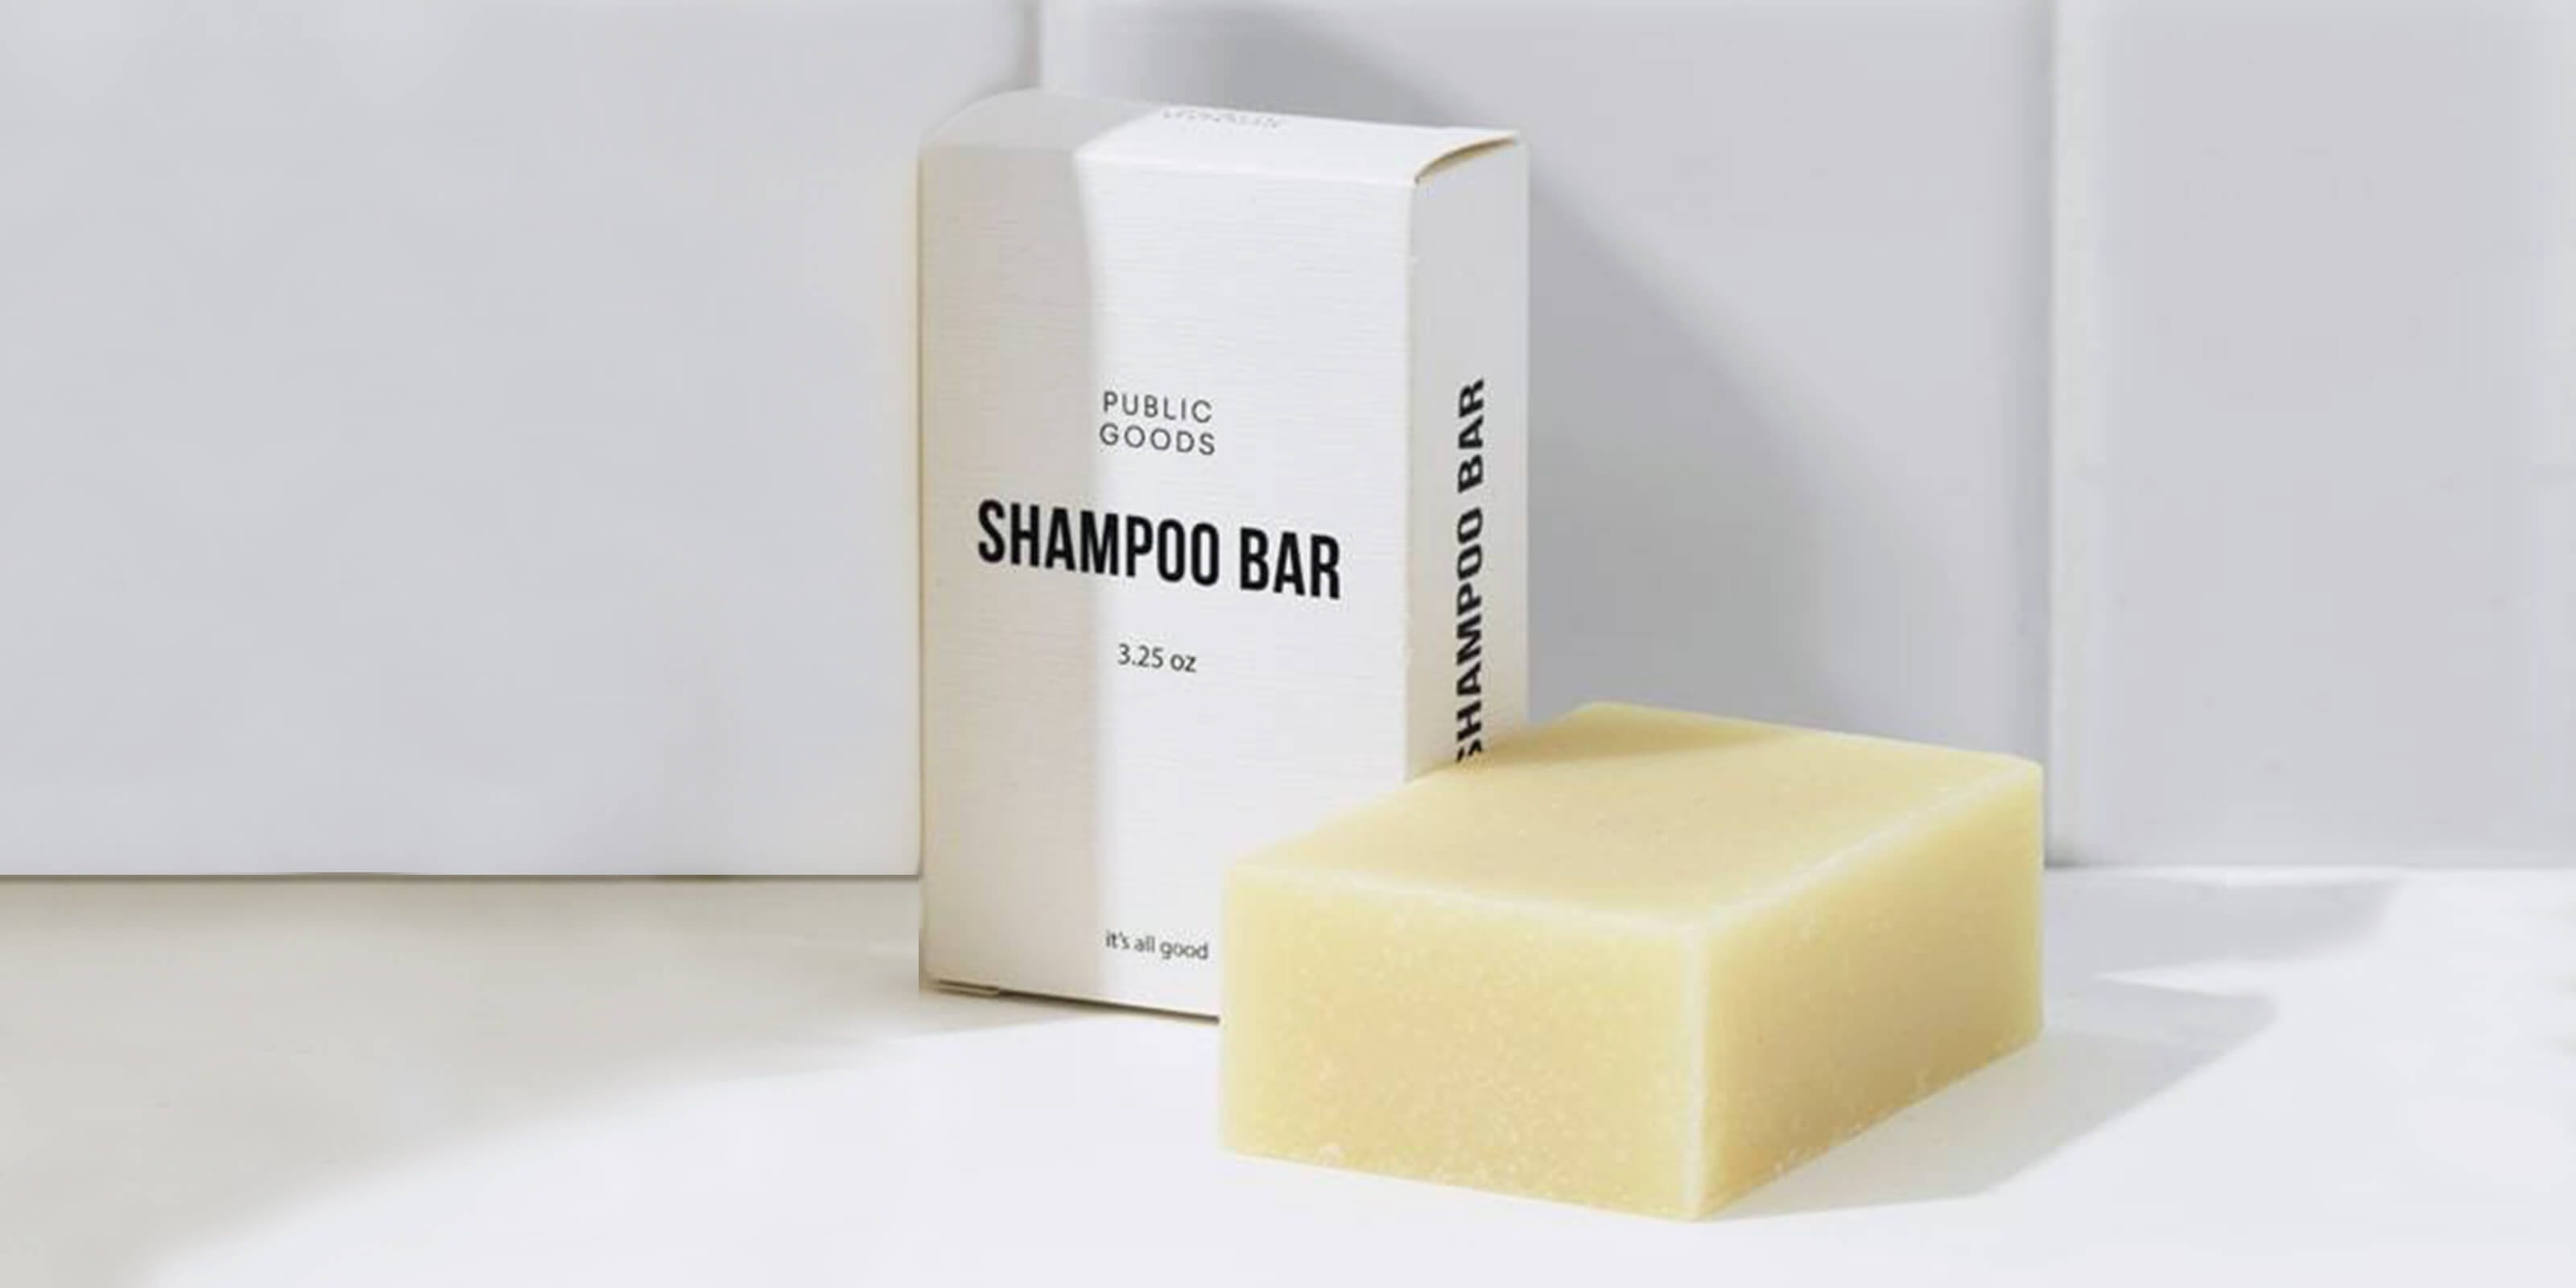 public goods shampoo bar, box